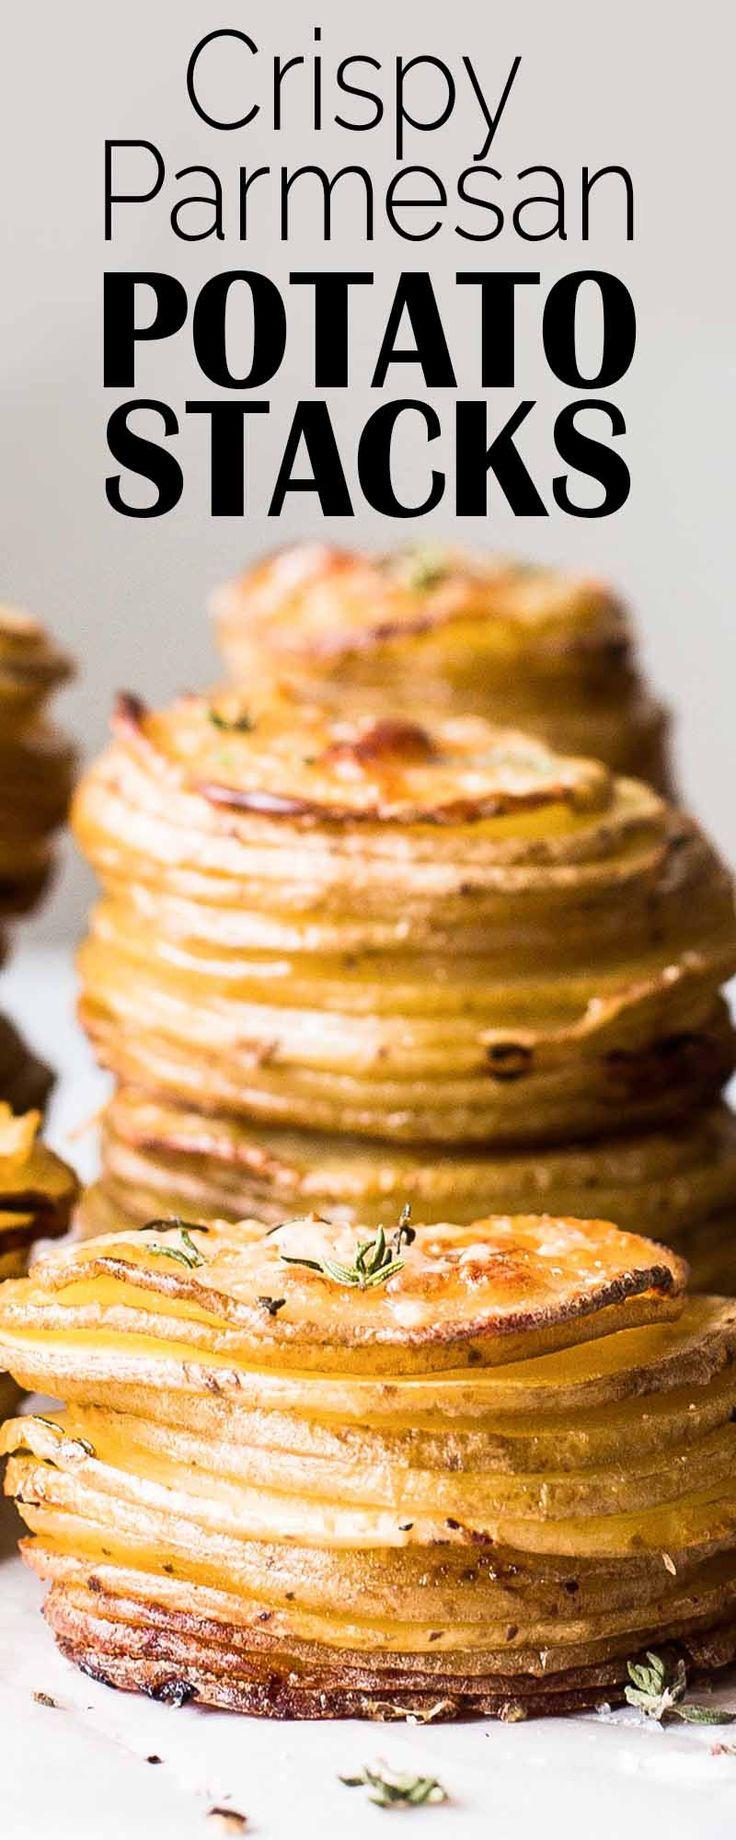 Crispy baked potato stacks with Parmesan and garlic! So easy to make in a muffin tin.